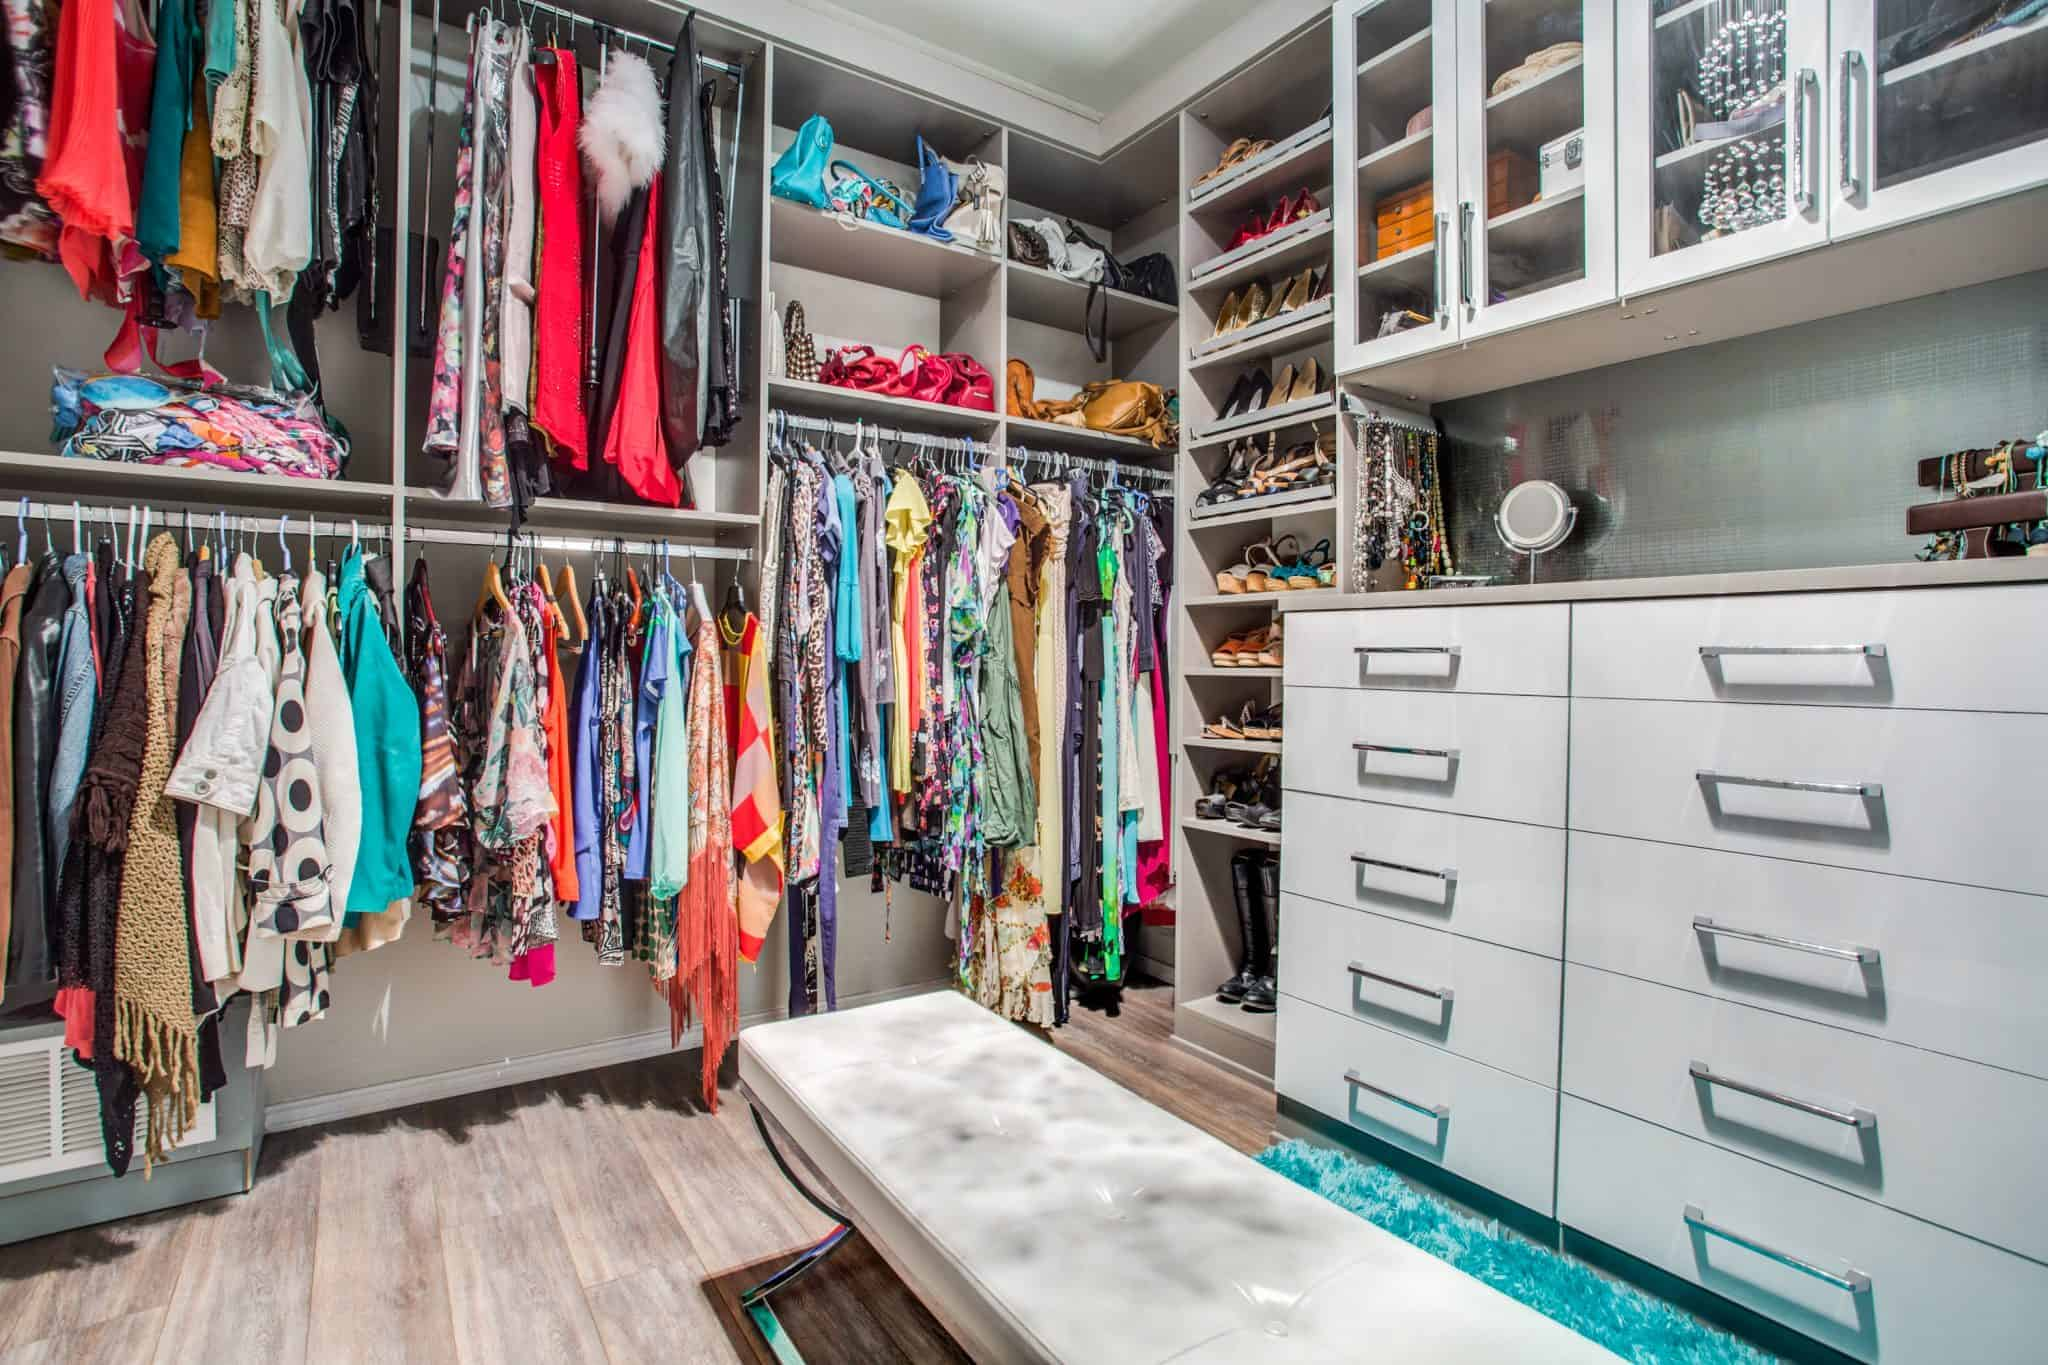 California Master Closet in Plano